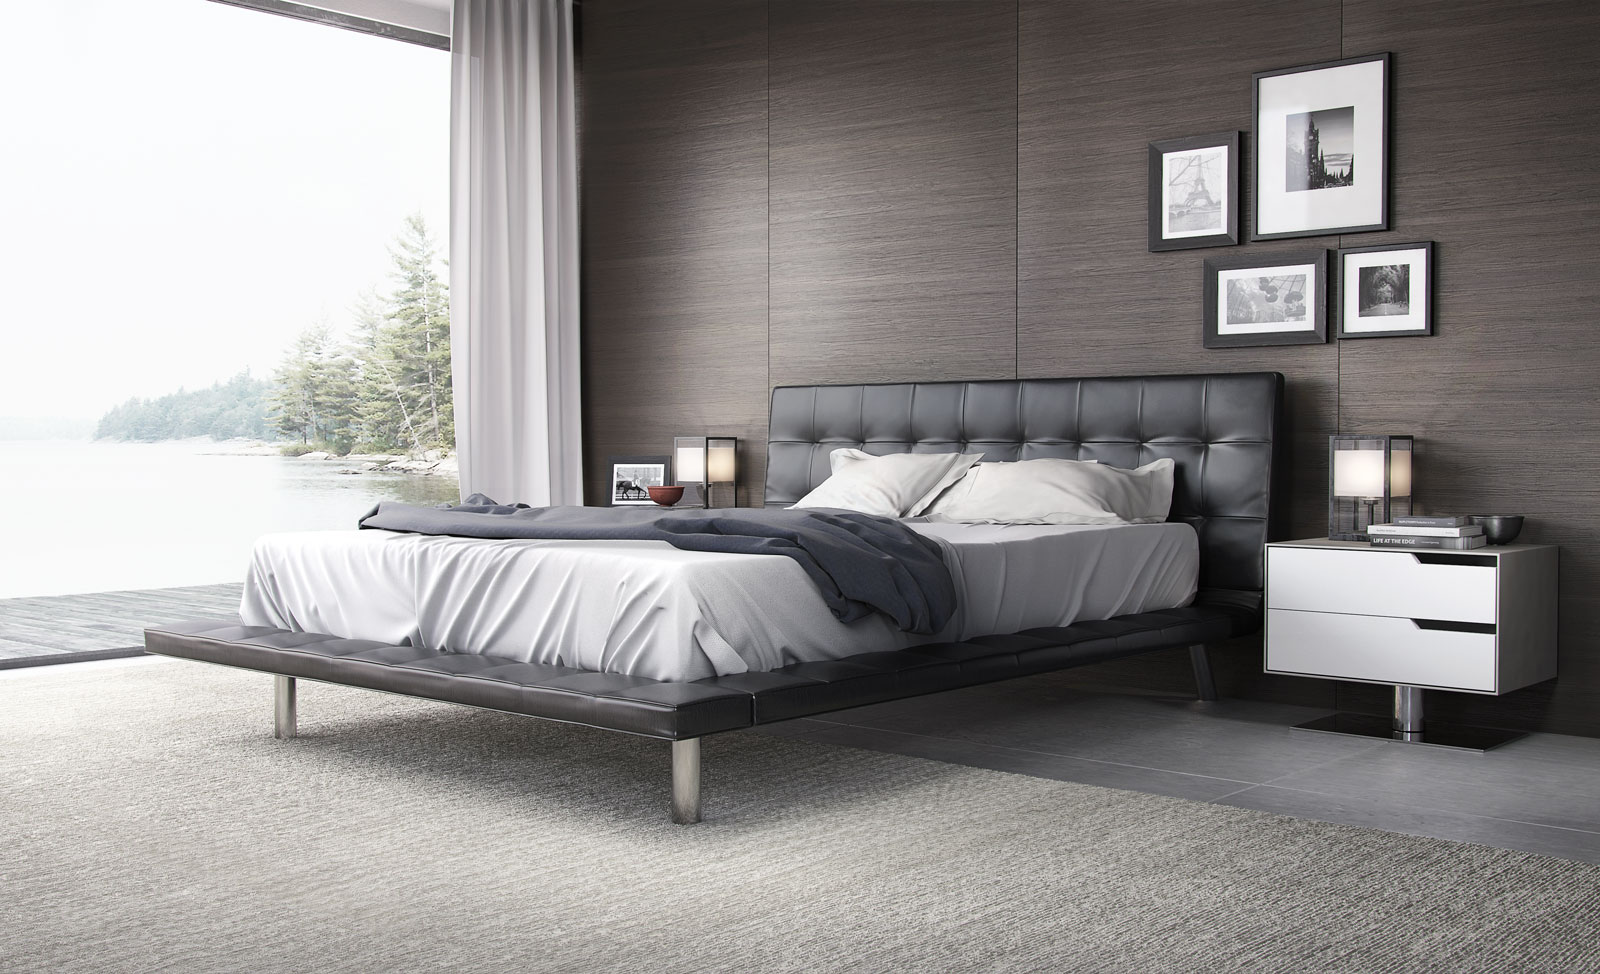 Fashionable Leather High End Platform Bed New Orleans Louisiana Mlhow